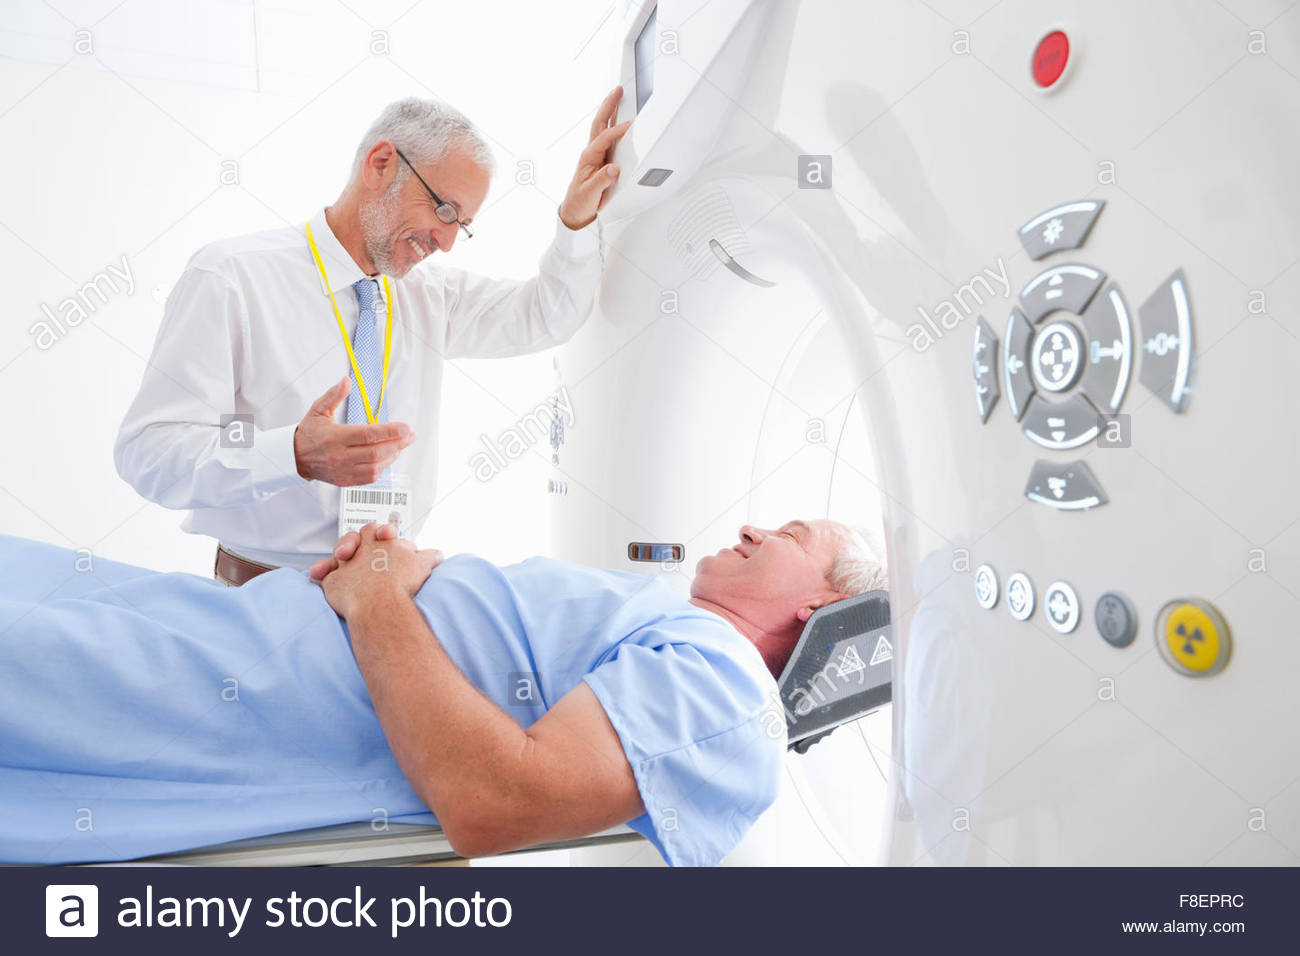 Doctor preparing patient for CT scan in hospital - Stock Image